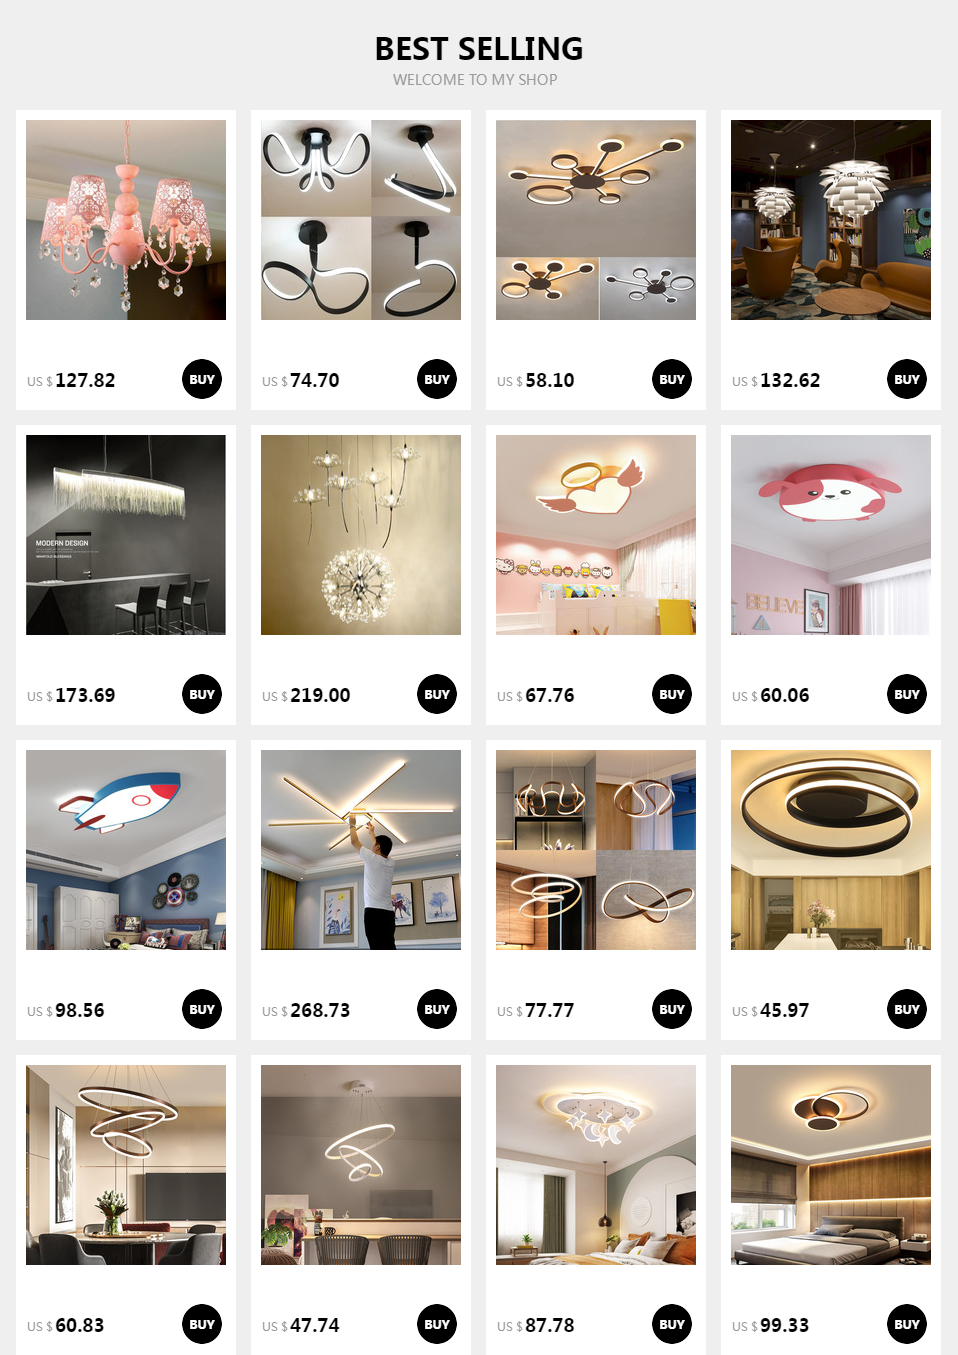 H5475c8f3de9746bcad5dfe43066a6d2eQ New Design Acrylic lotus Led Ceiling Lights For Living Study Room Bedroom lampe plafond avize Indoor Ceiling Lamp Free Shipping